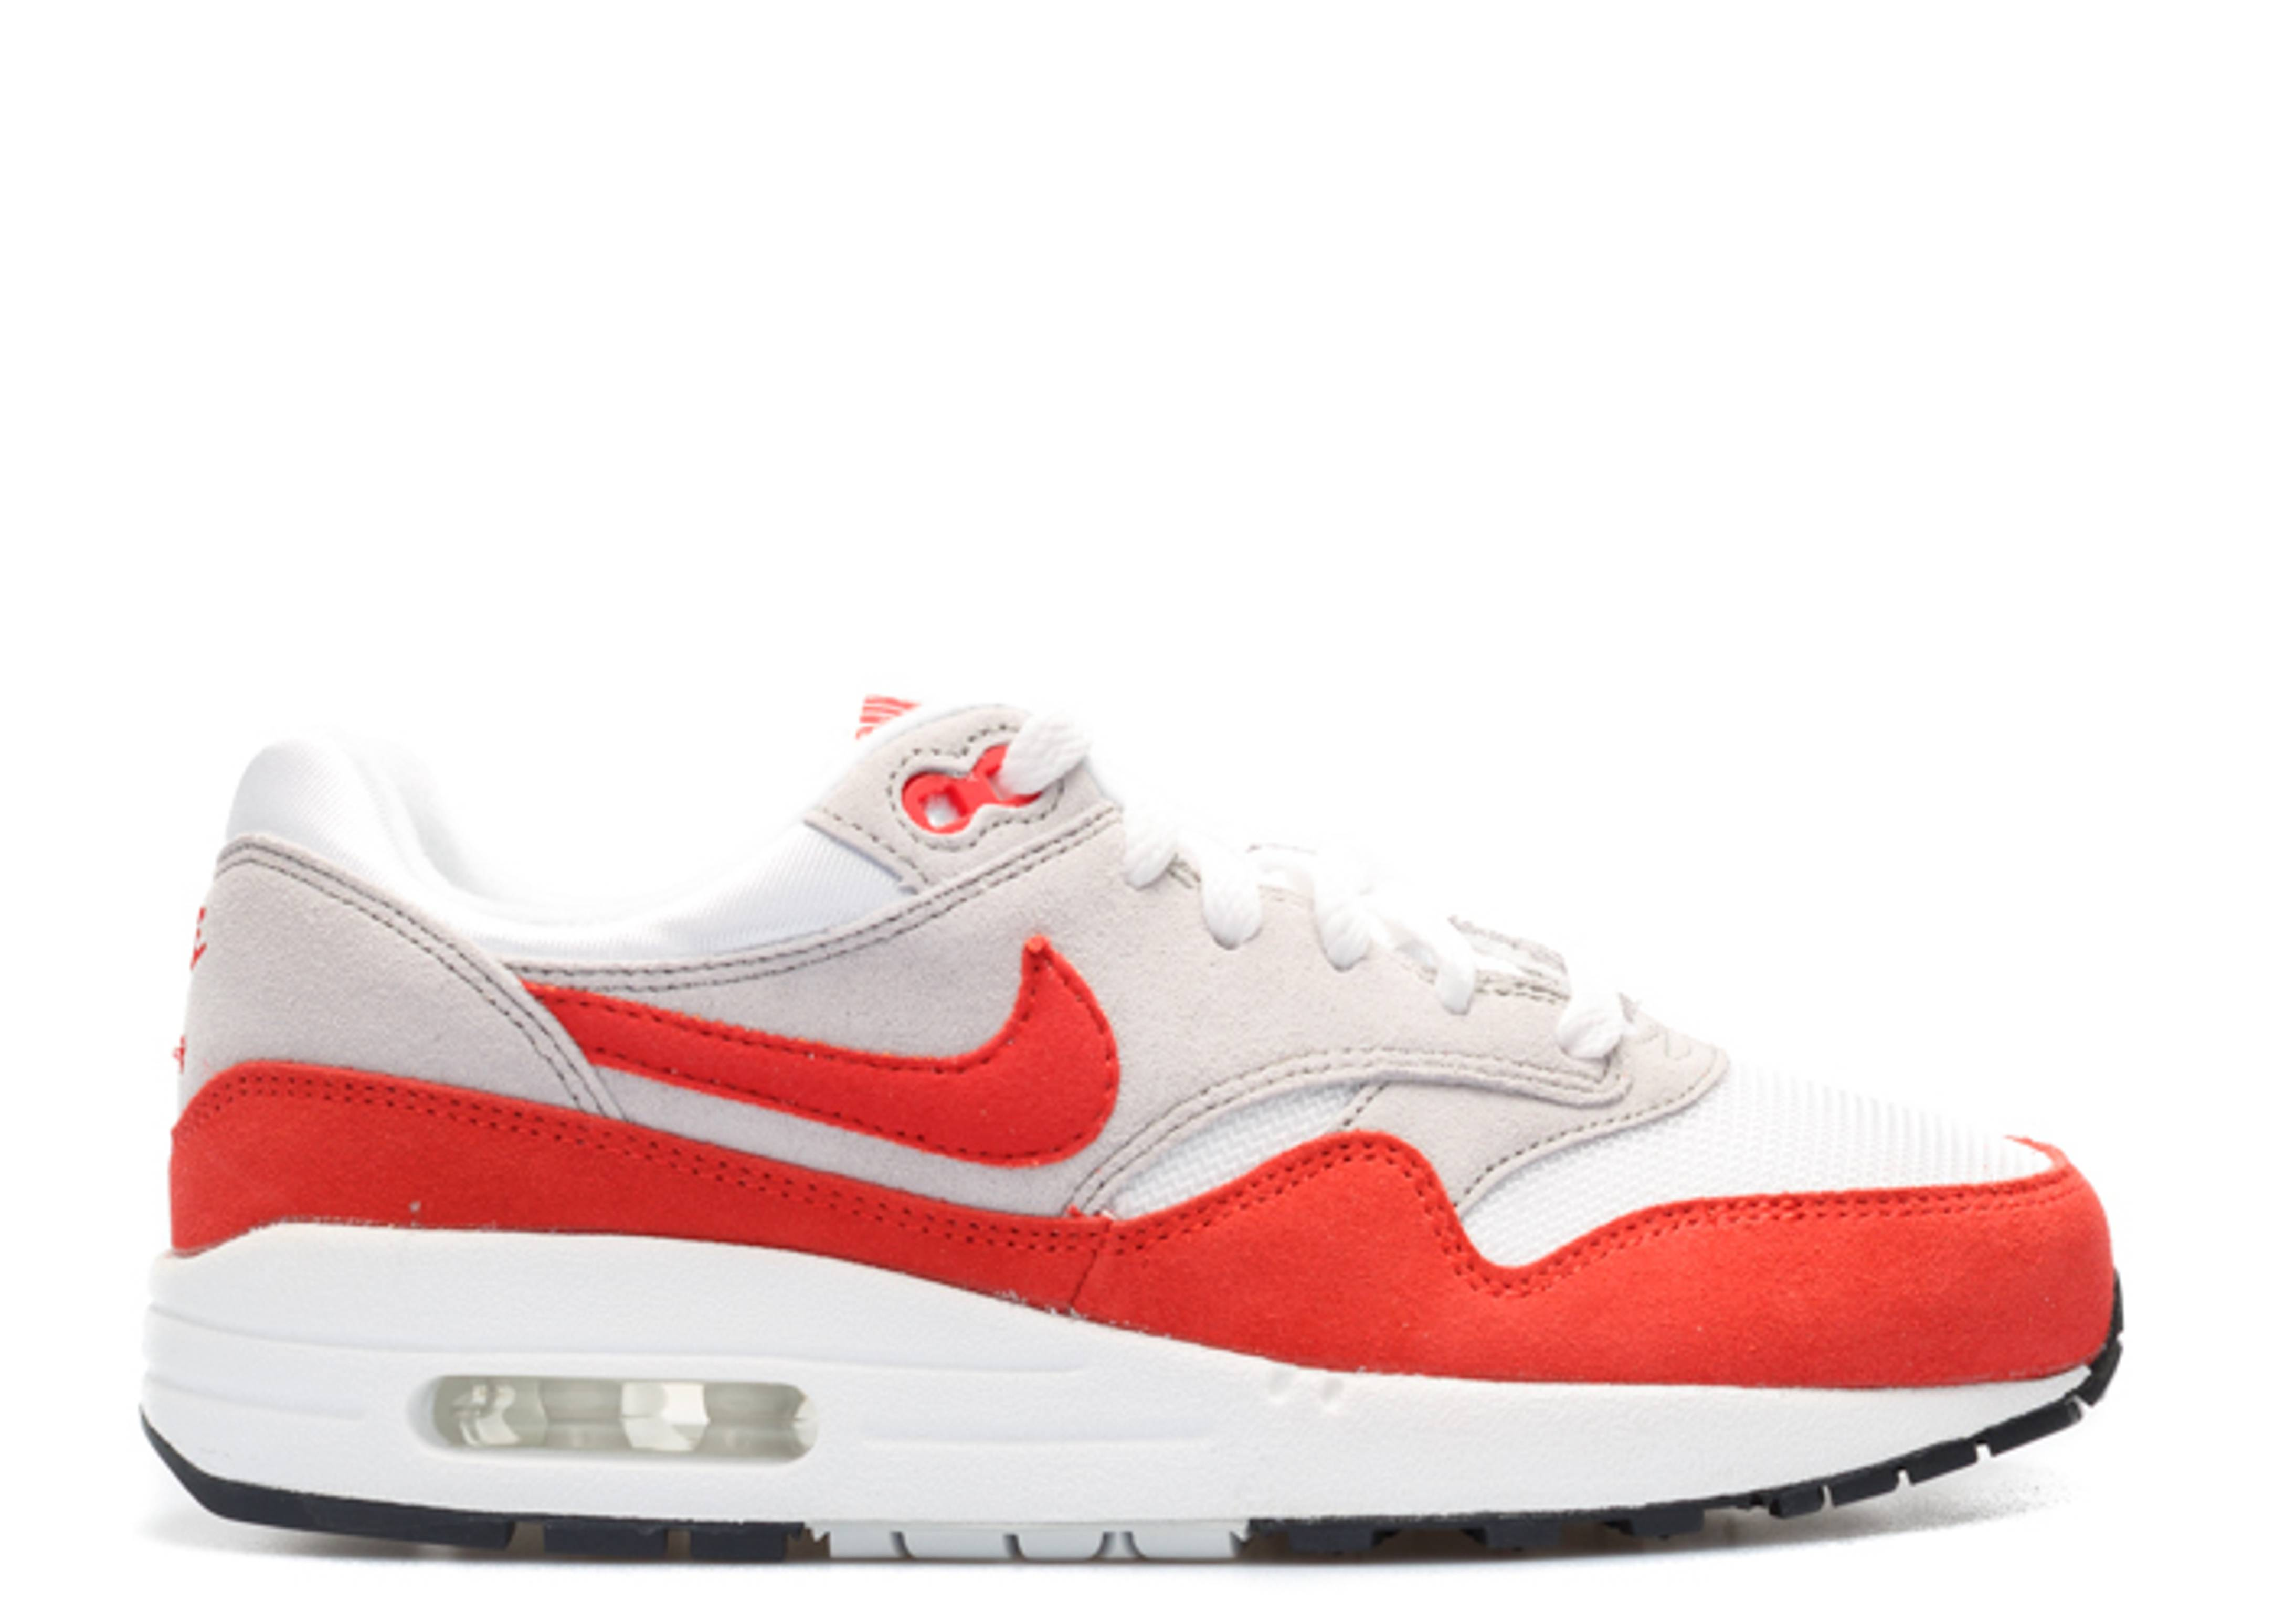 Shop sporty nike air max men\u0026#39;s athletic shoes of product line nike air,lebron james,air griffey.Nike black cement air max 97s air max shoes gear.